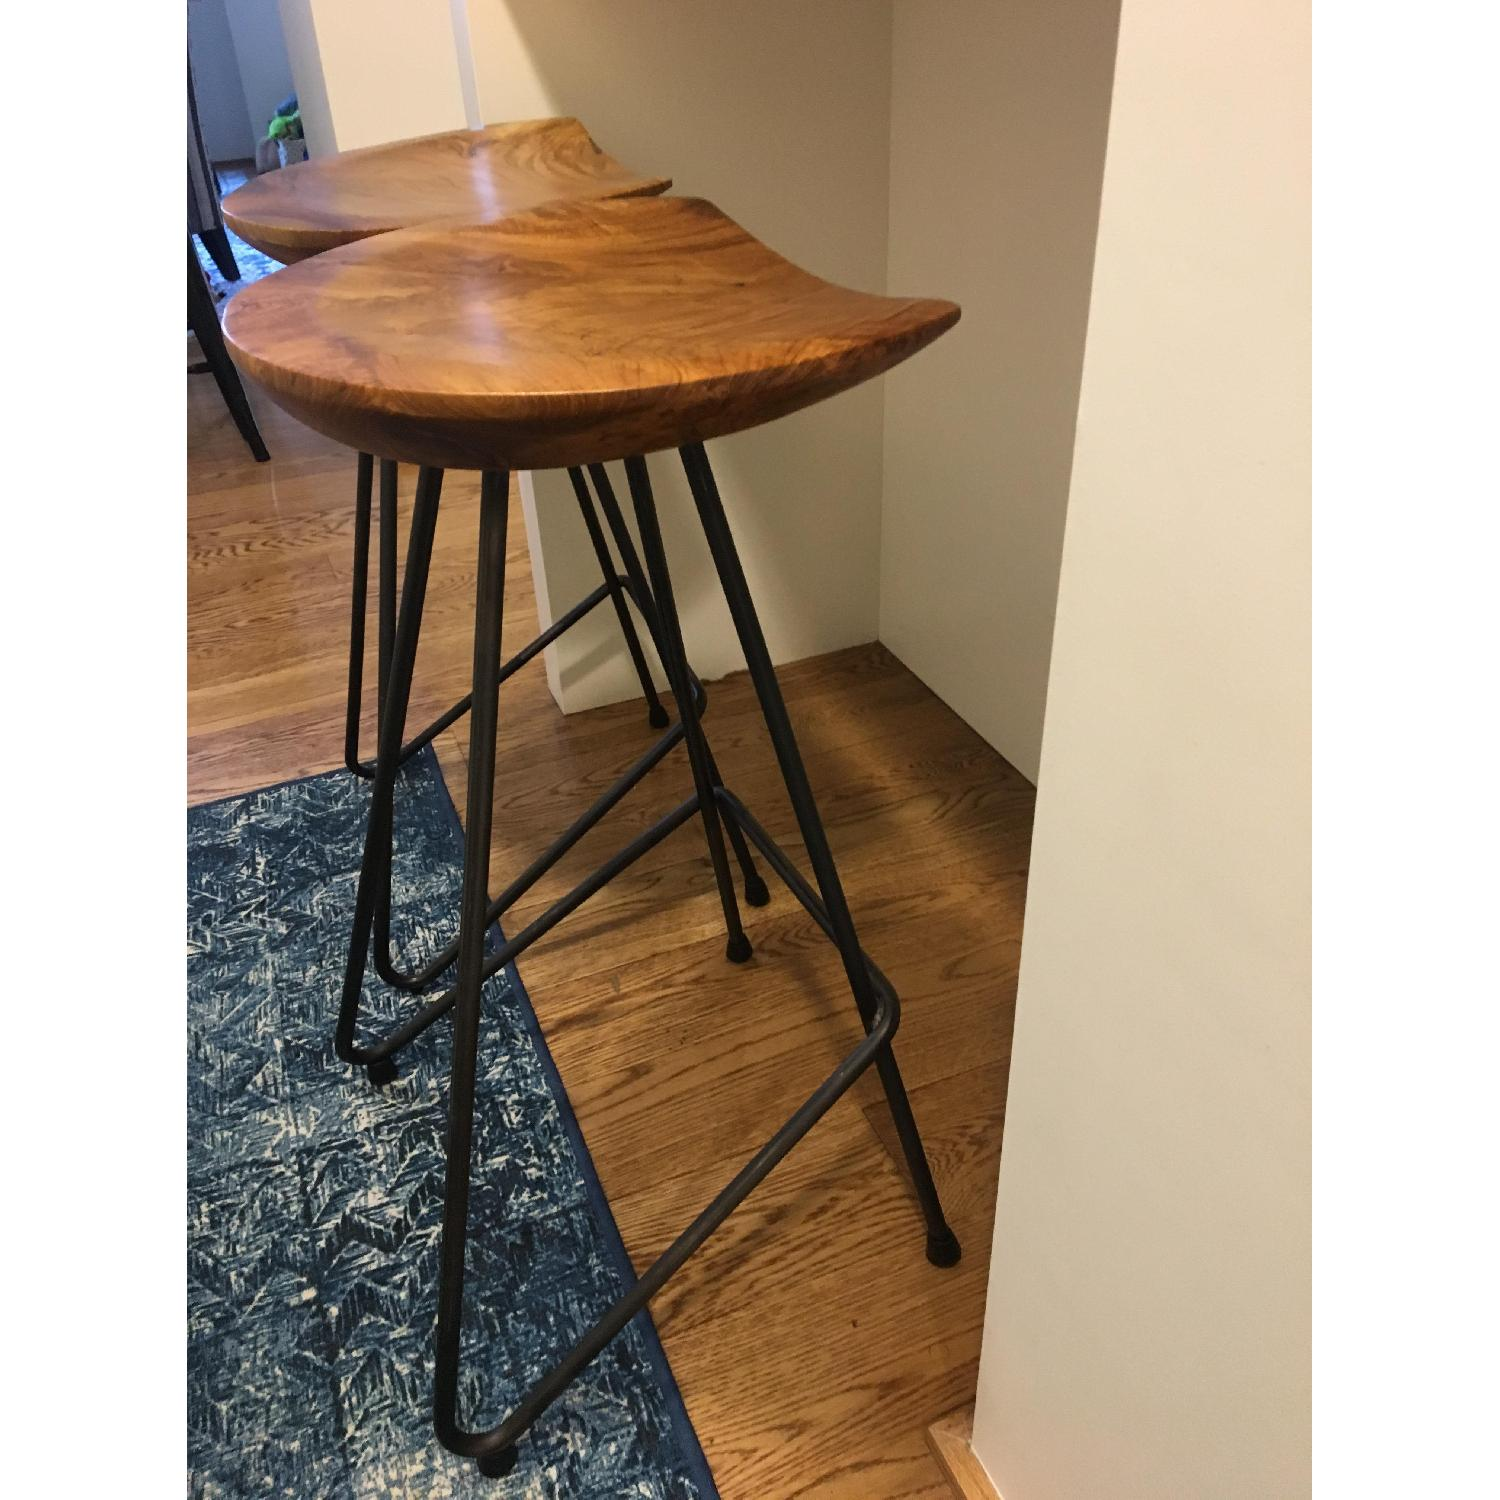 From The Source Perch Teak Bar Stool-2